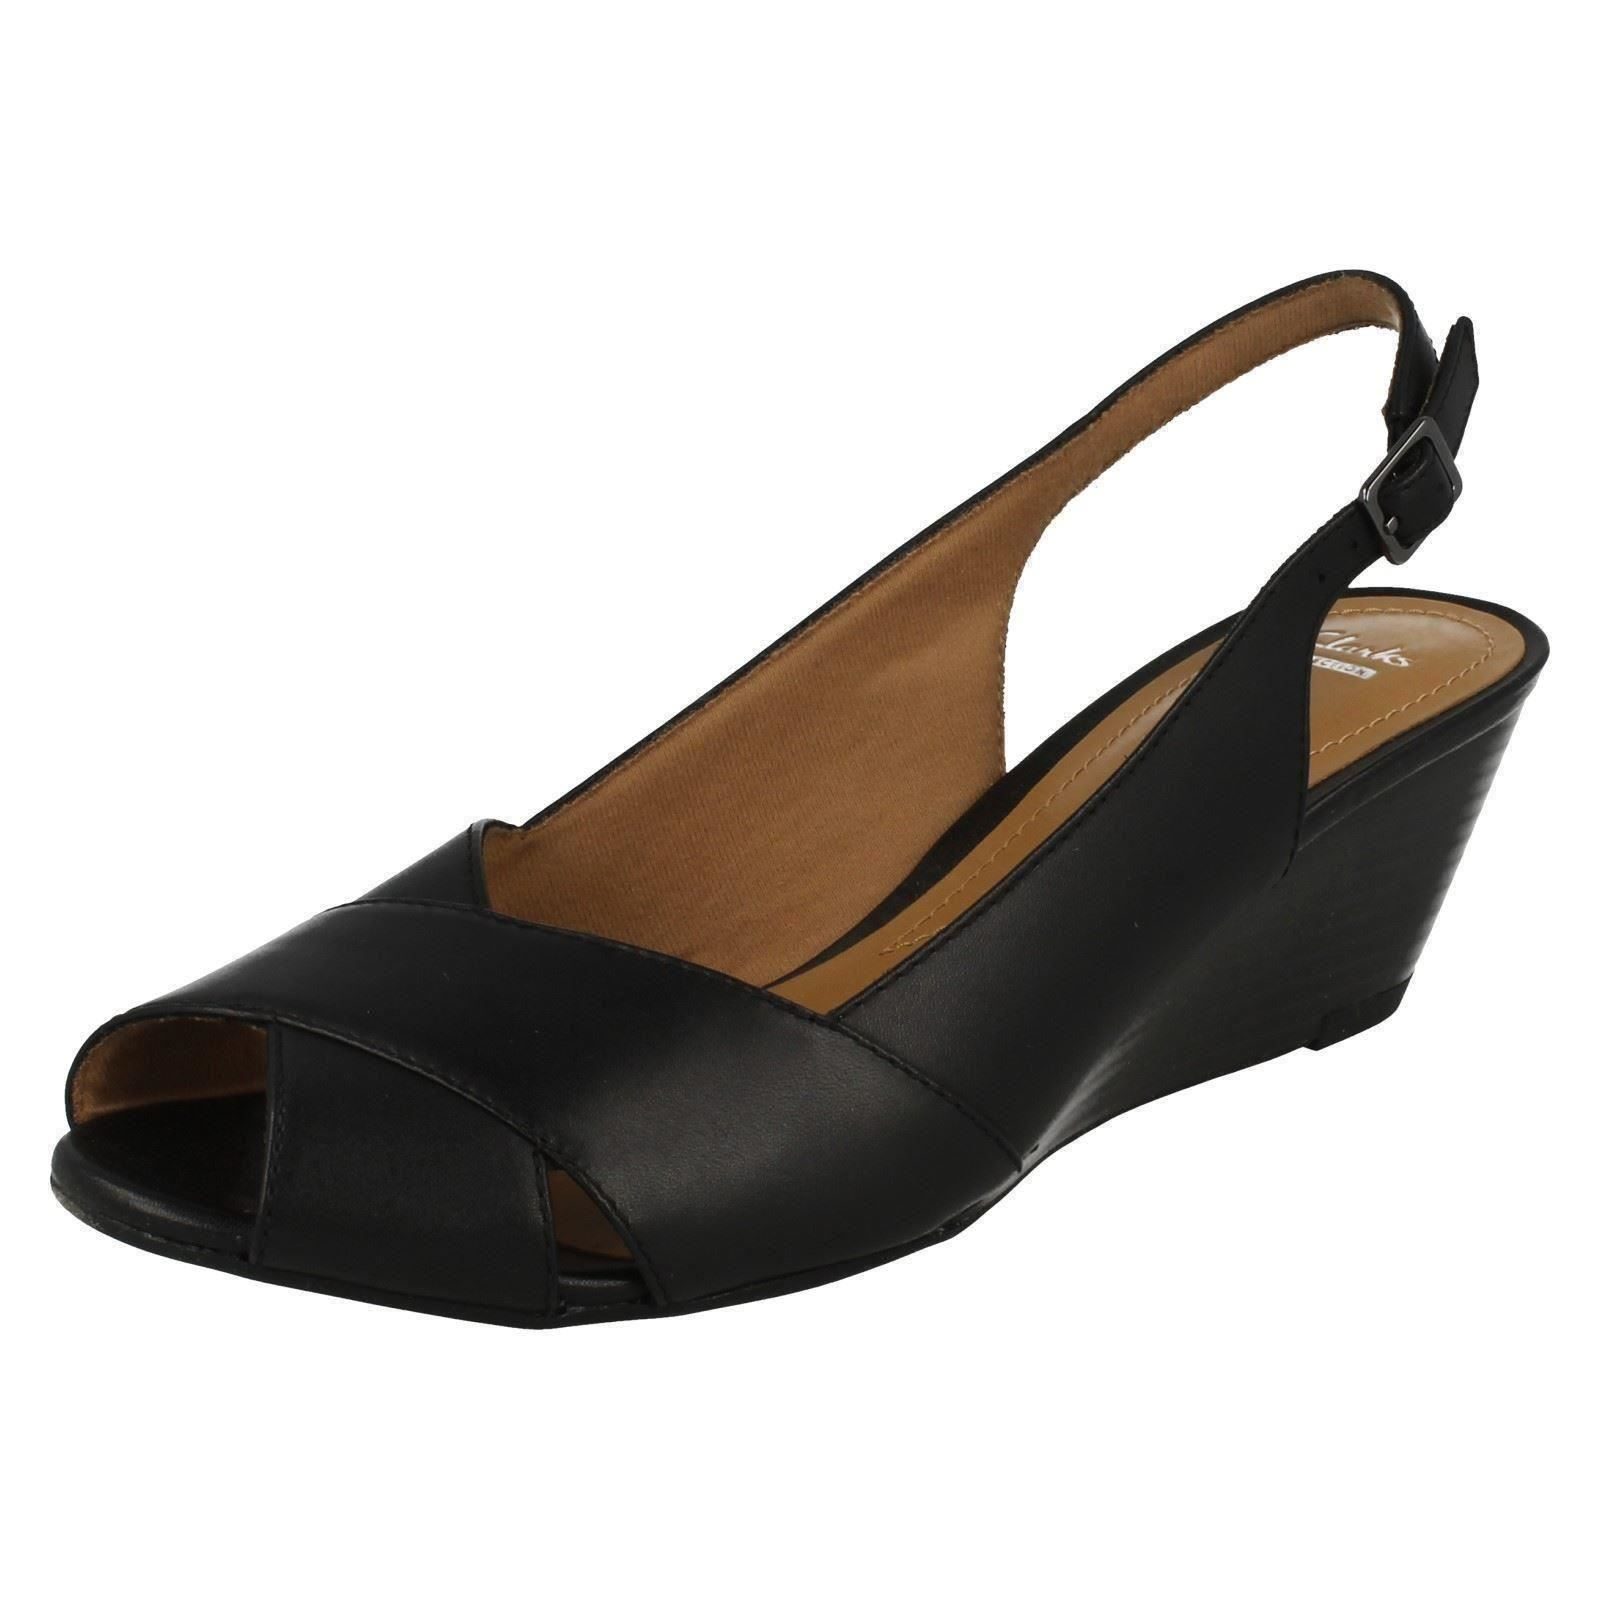 759f2d016 Ladies Clarks Black Leather Sling Back Wedge Sandal Style - BRIELLE Kae UK  4. About this product. Picture 1 of 10  Picture 2 of 10 ...